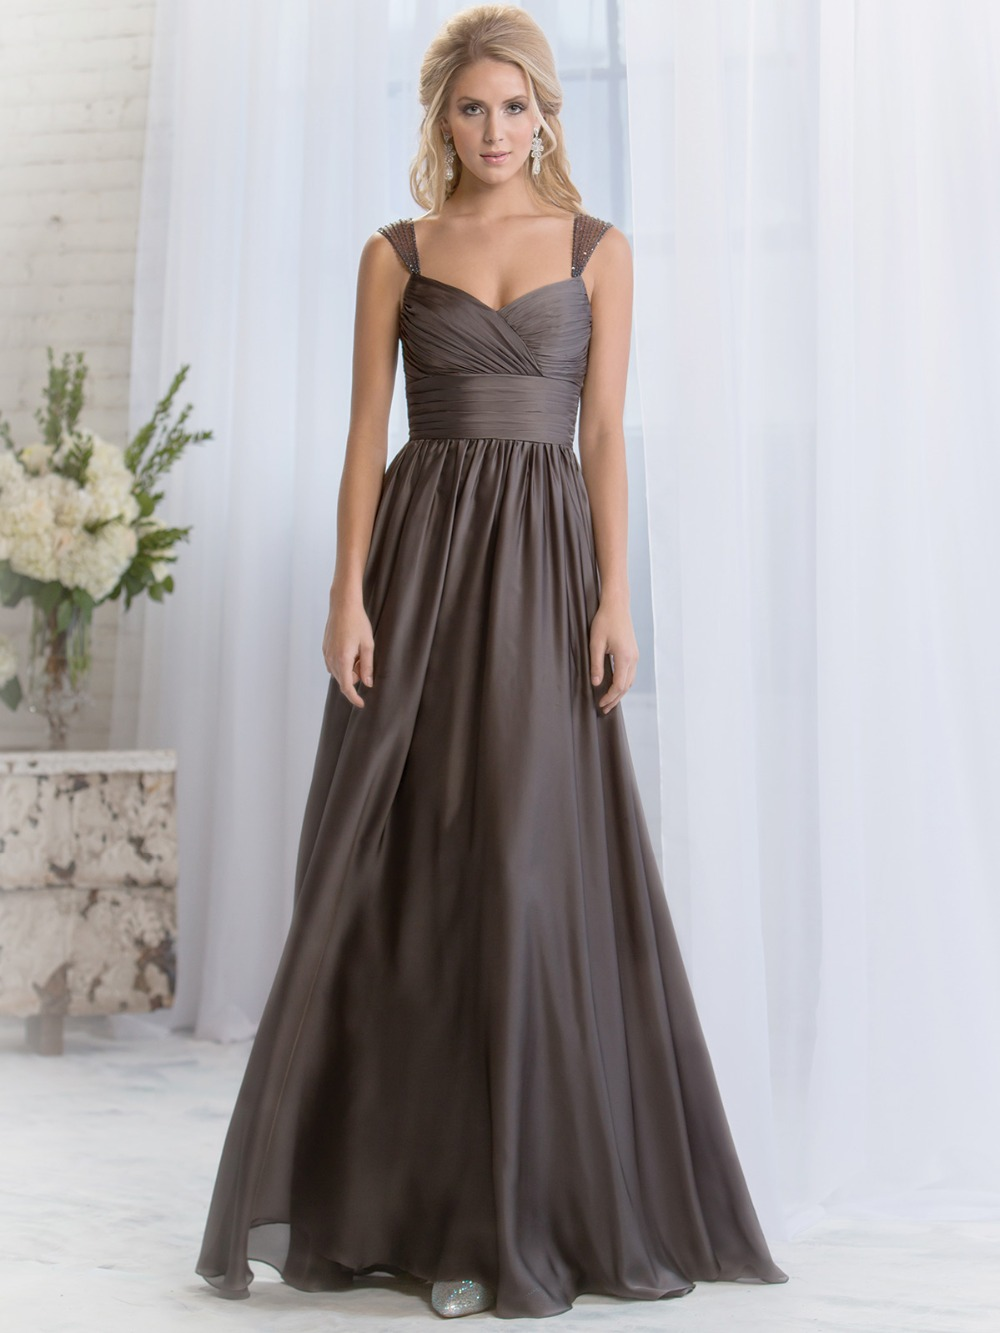 Belks bridesmaid dresses gallery braidsmaid dress cocktail belks bridesmaid dresses gallery braidsmaid dress cocktail connected apparel plus size lace top tiered dress images ombrellifo Gallery